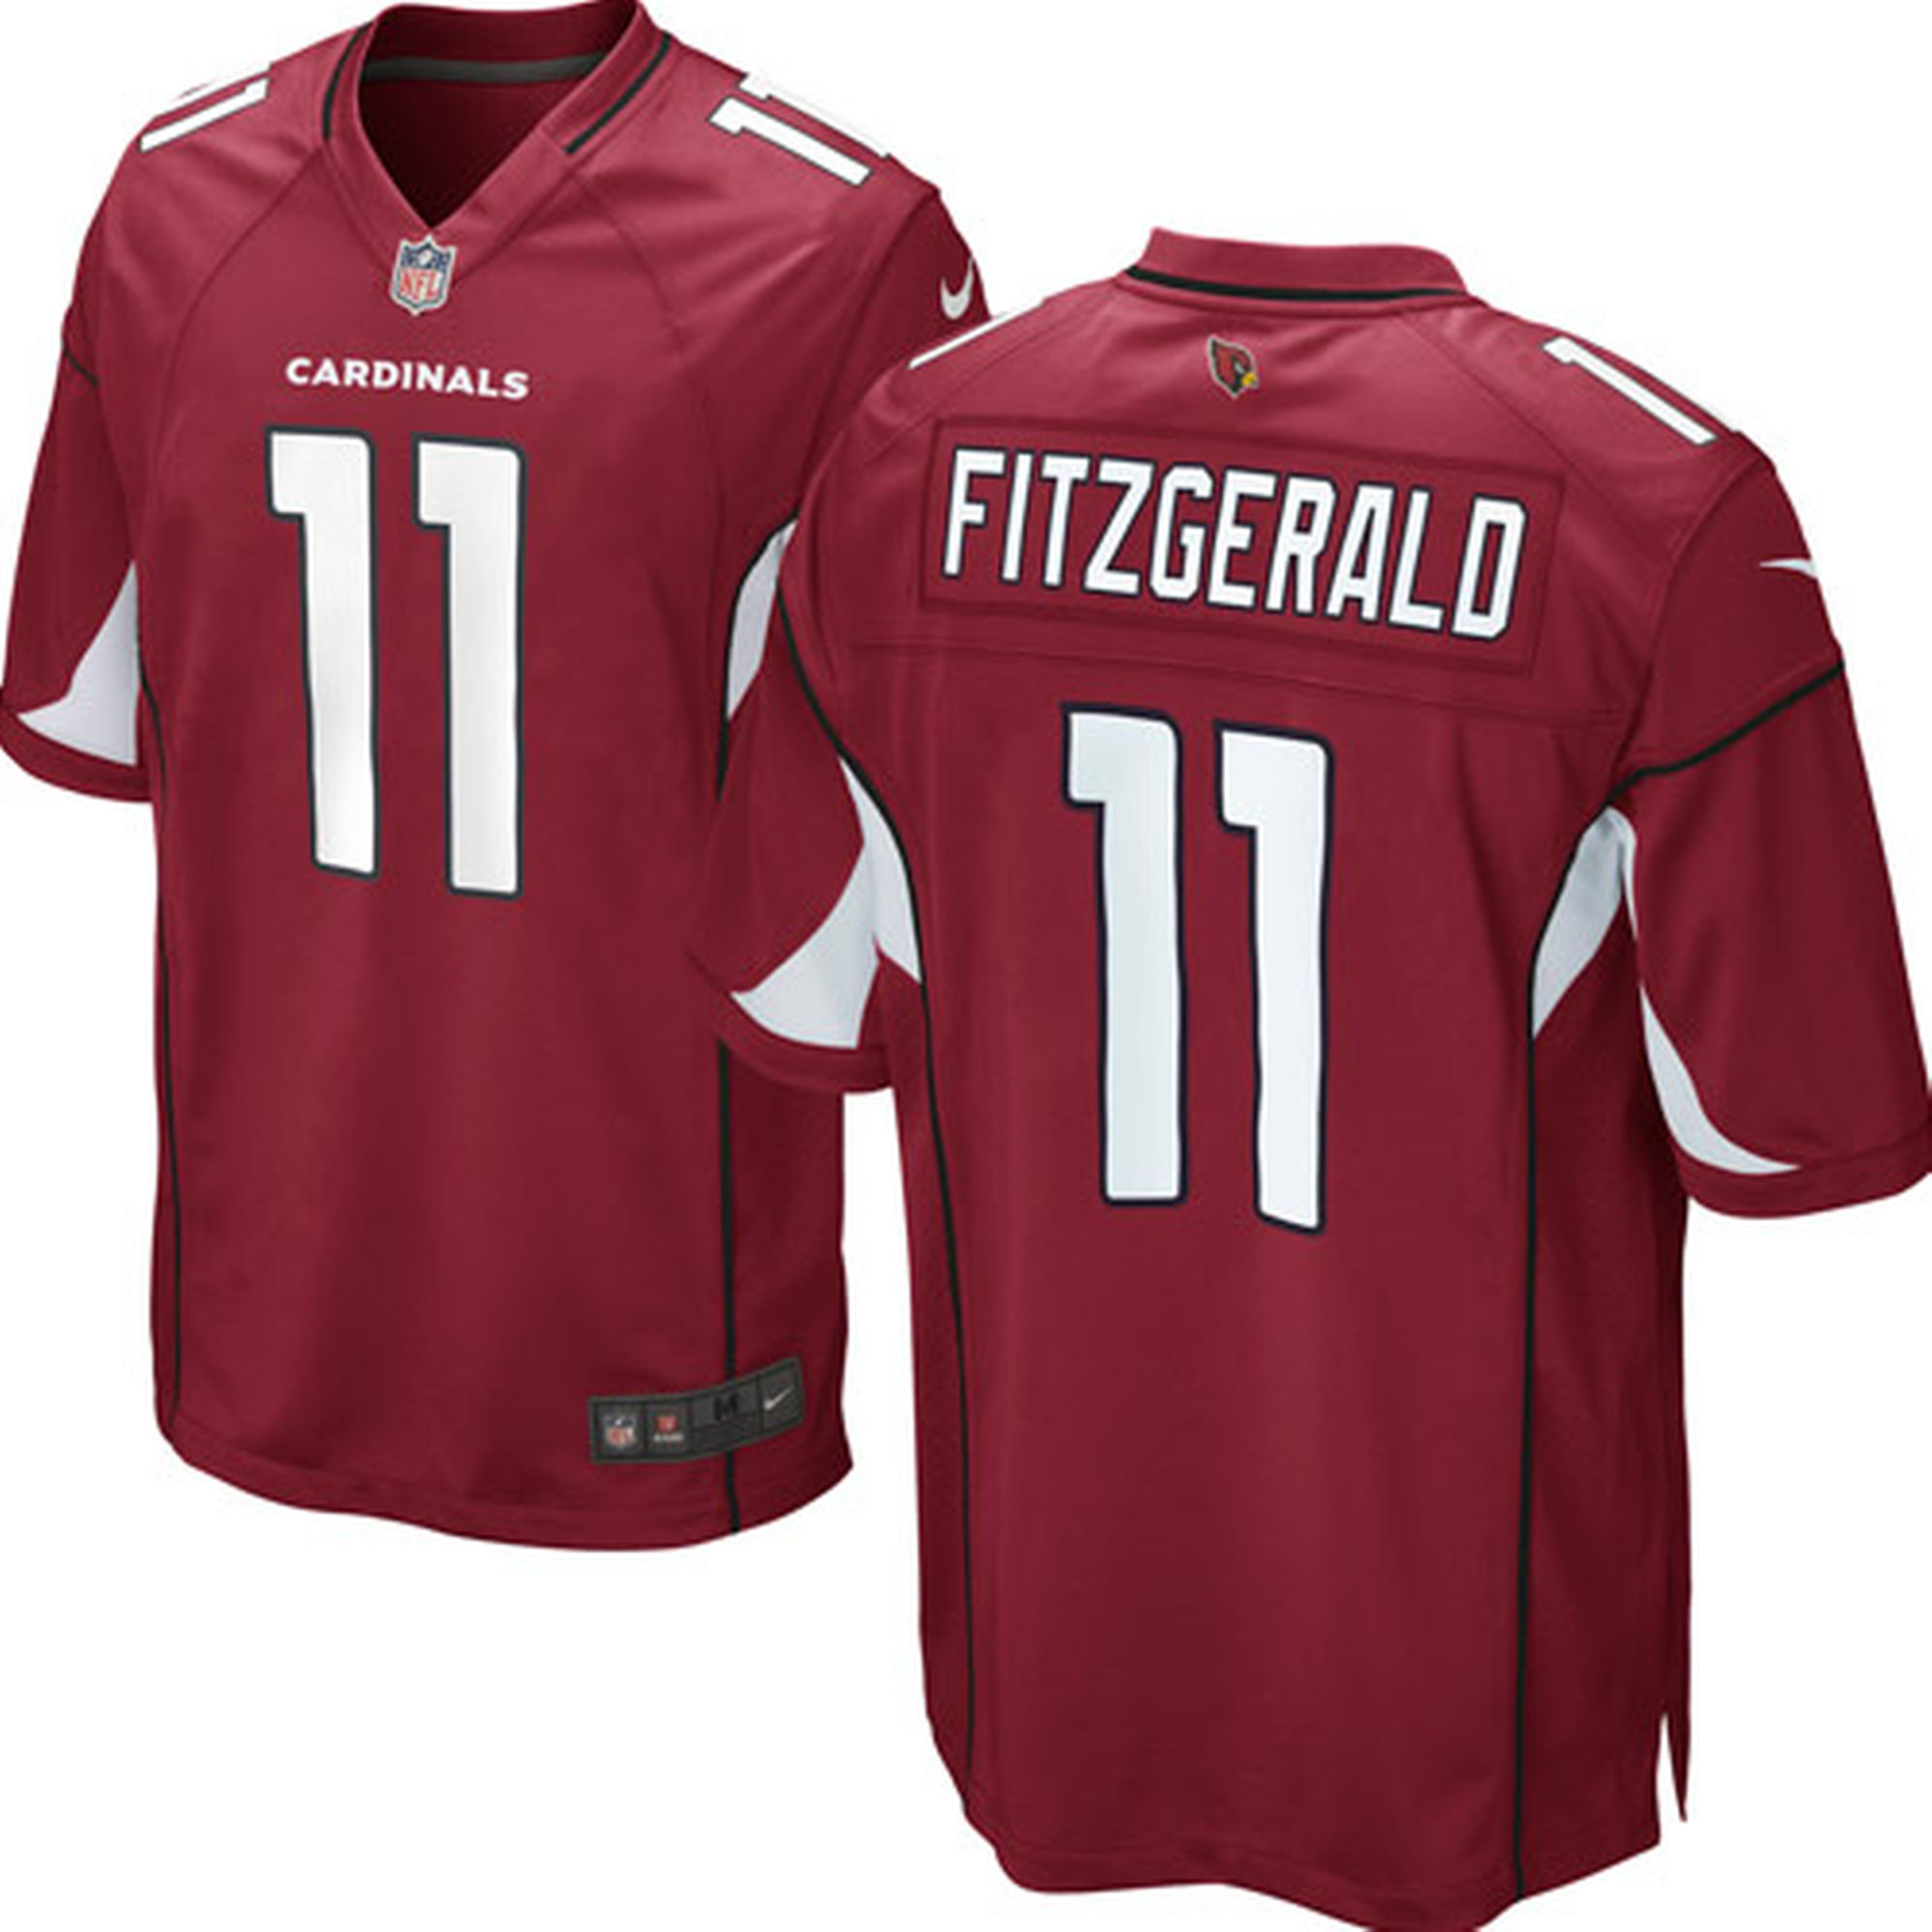 Men's Arizona Cardinals #11 Larry Fitzgerald Team Color Stitched Limited NFL Jersey